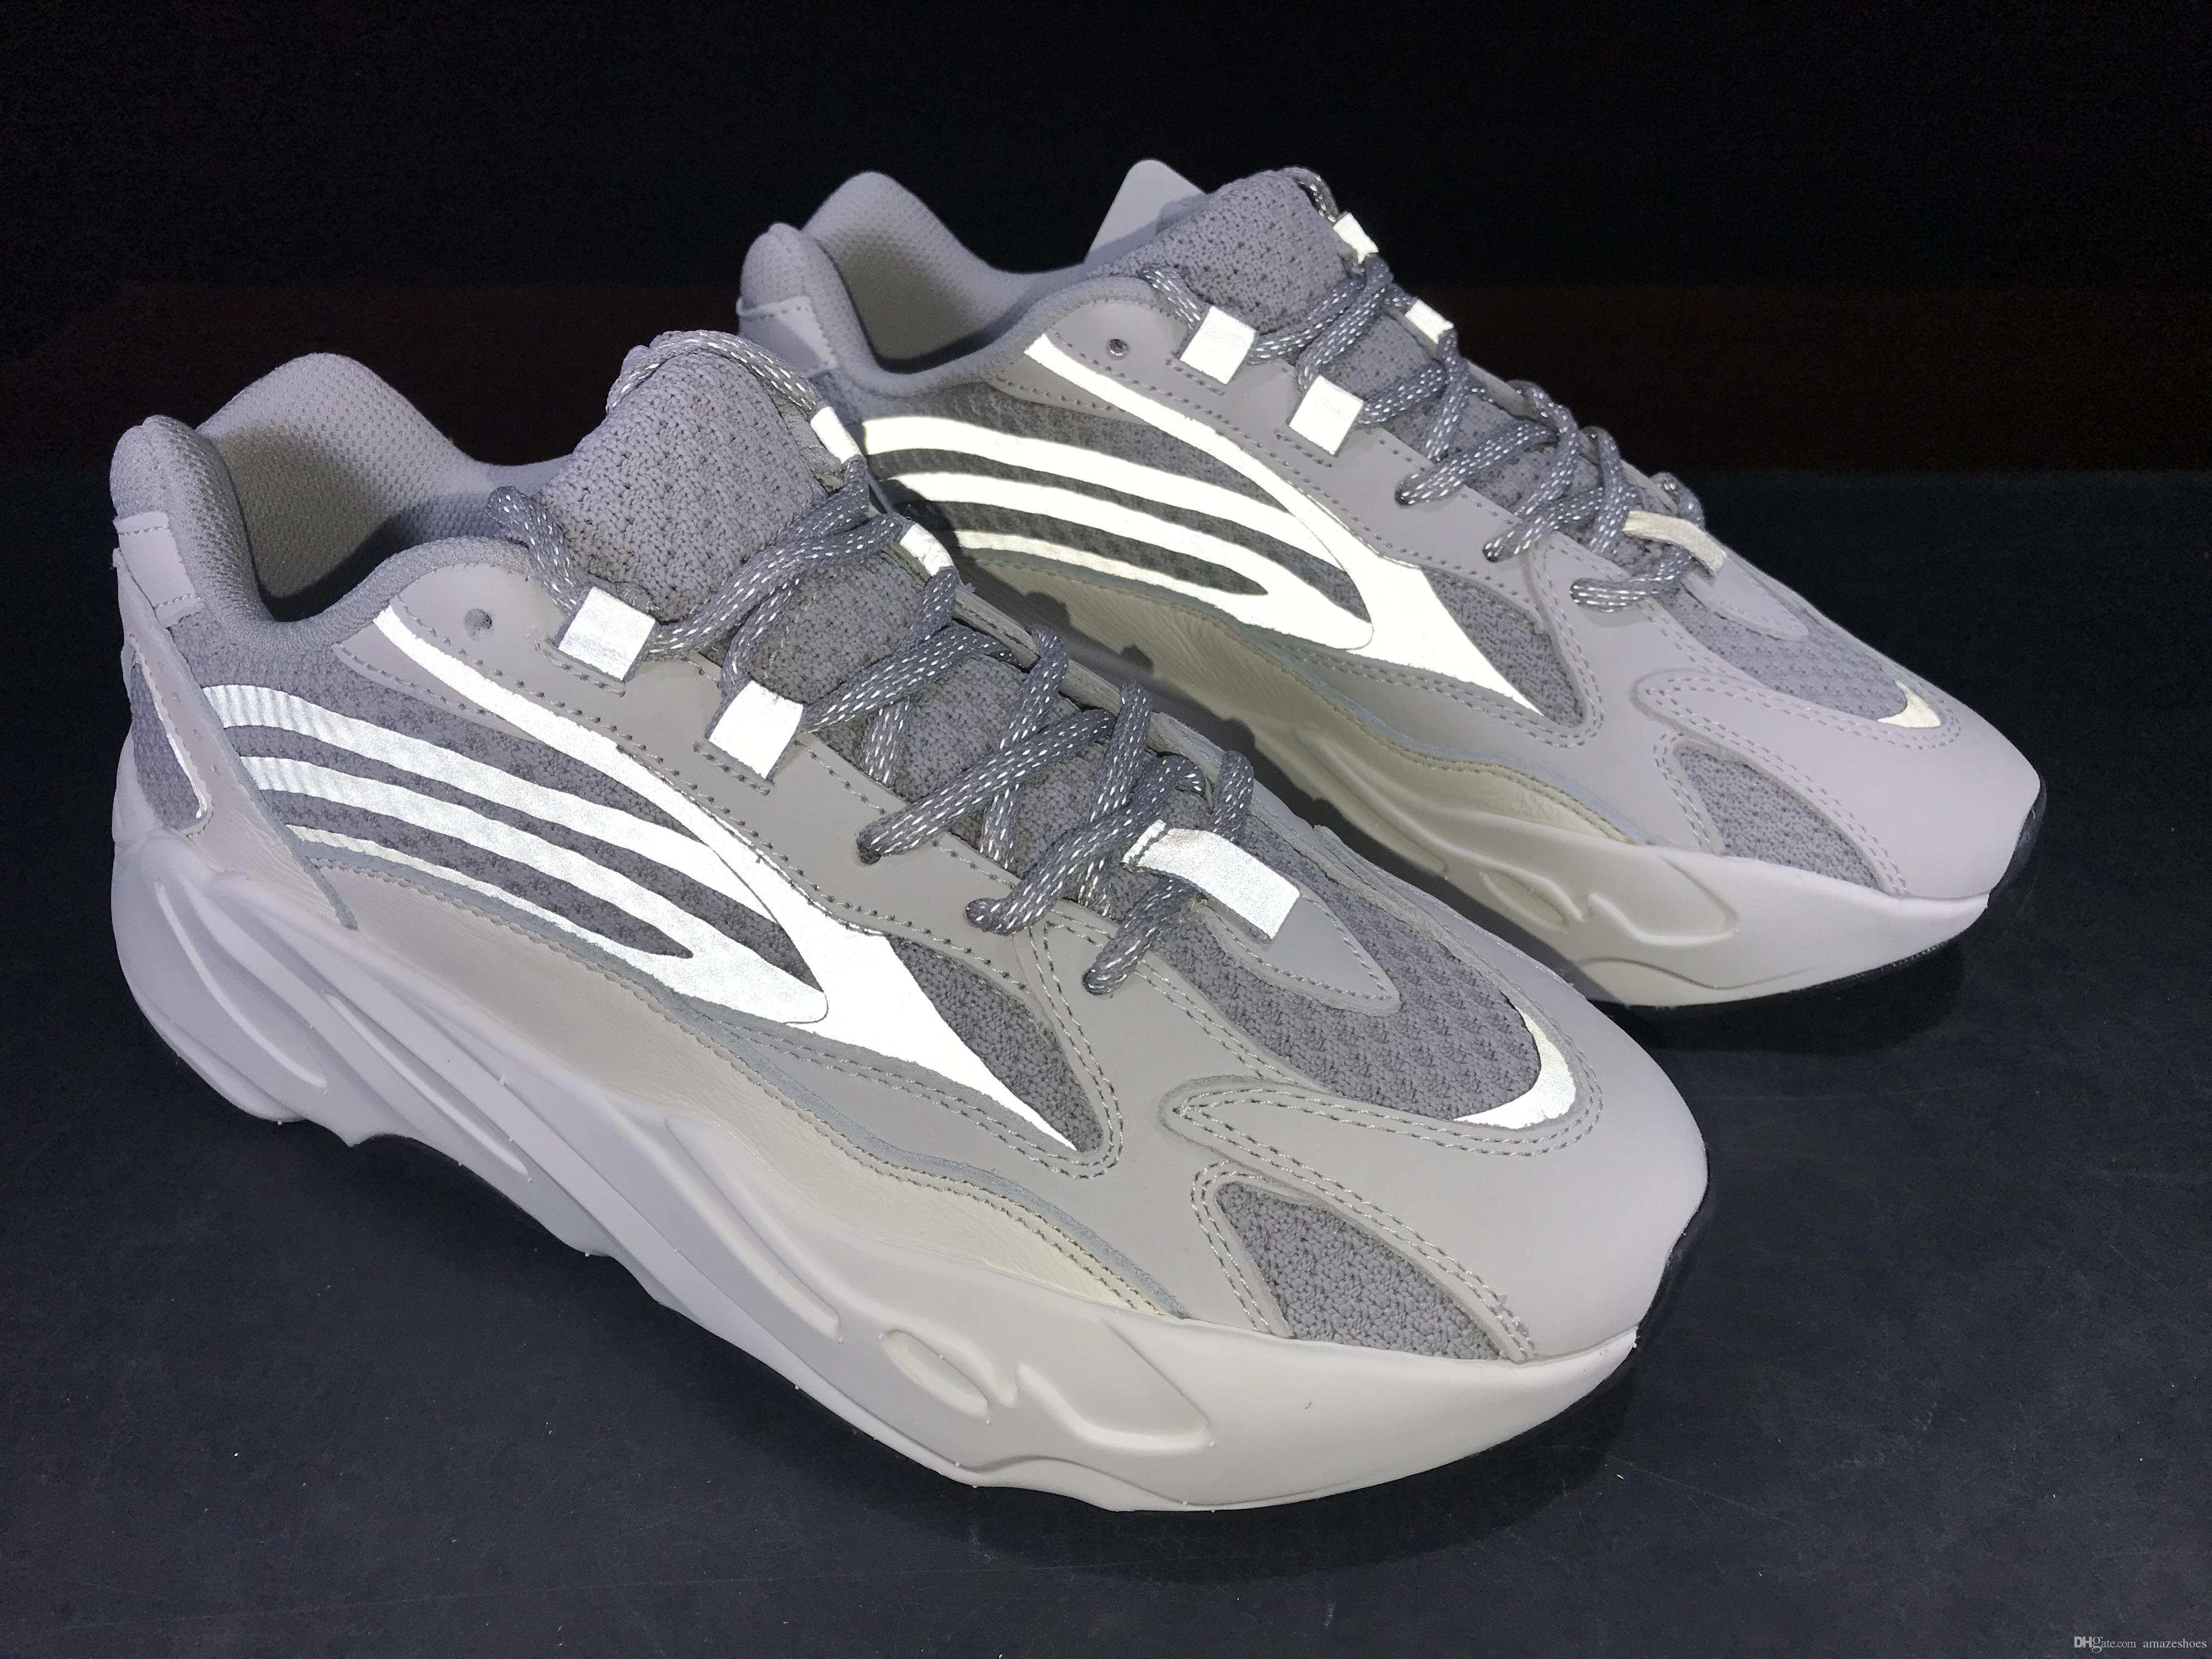 first rate 12417 4814a 2019 Adidas Yeezy Kanye West 700 V2 Static EF2829 Wave Runner Running Shoes  700s Sports Sneakers Mauve Solid Grey Luxury Designer Shoes Size 36 46 Por  ...